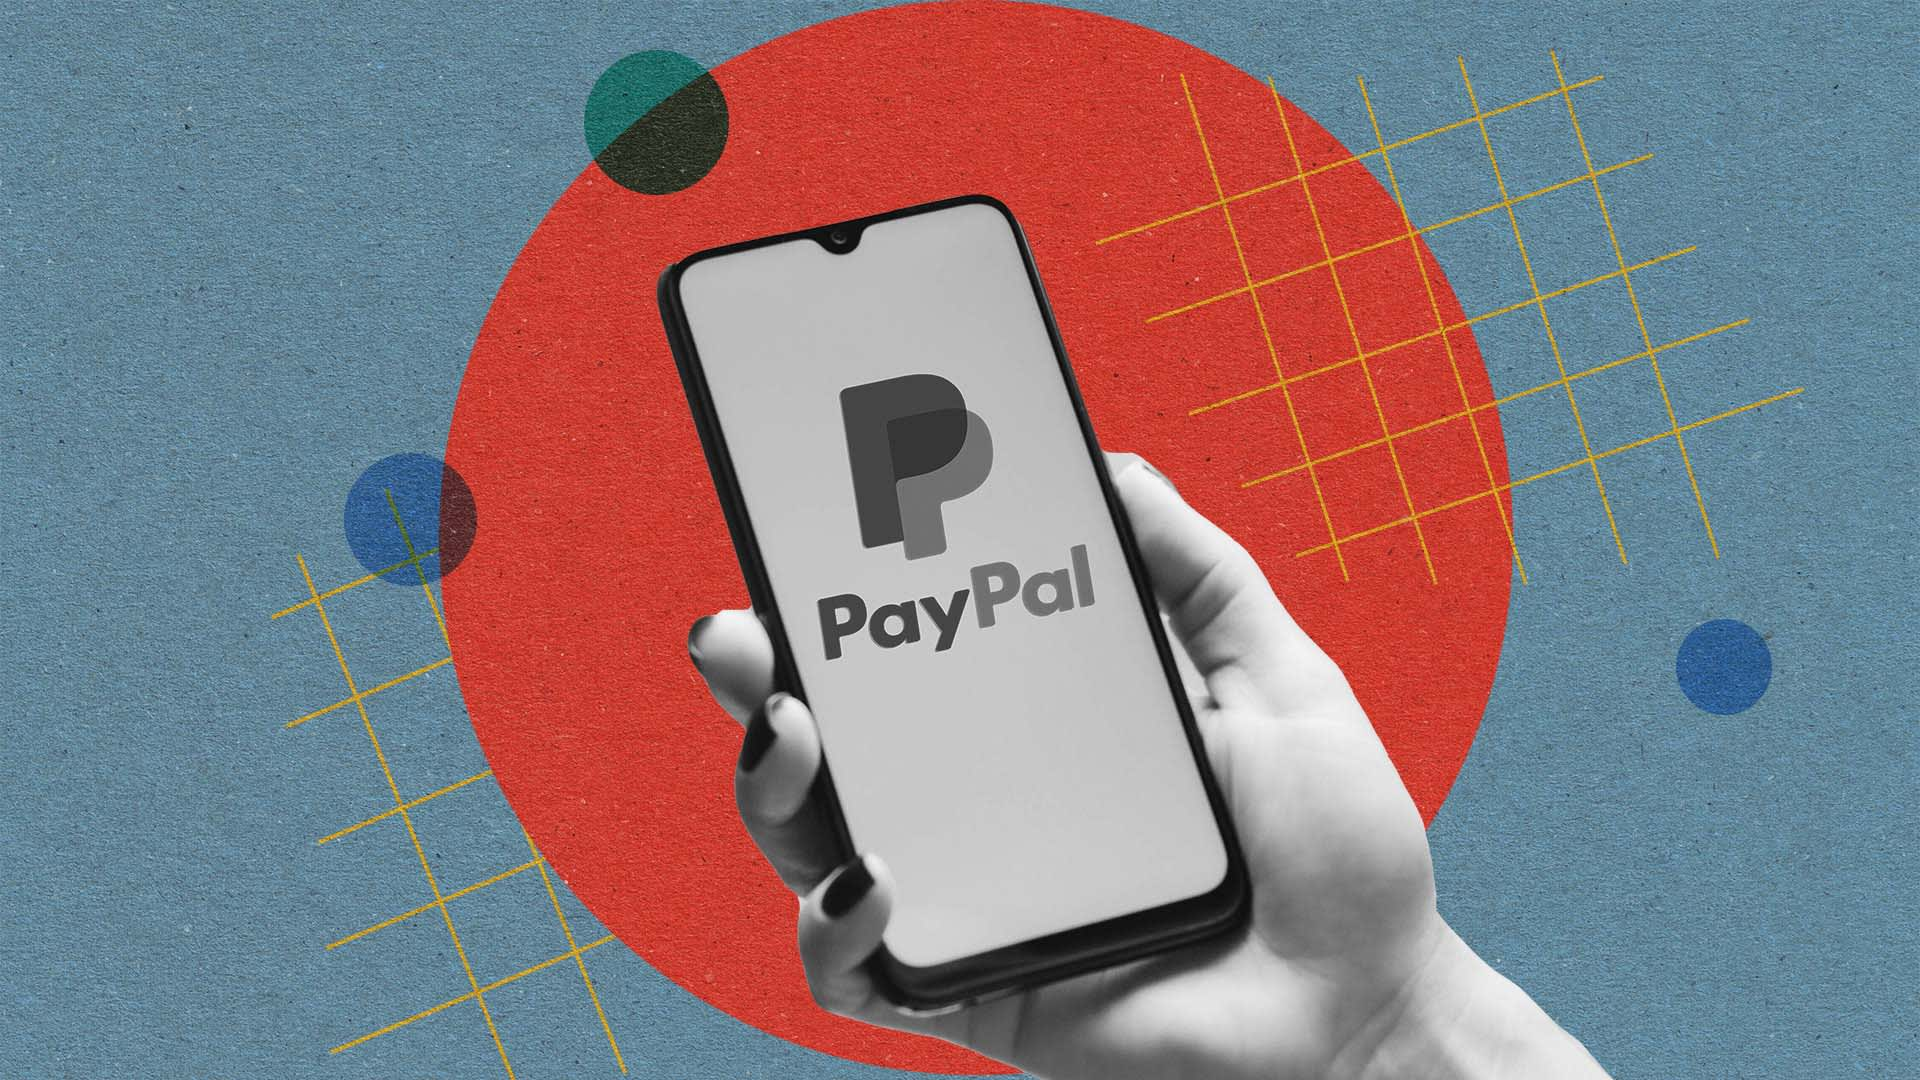 How PayPal Uses Technology to Build a More Inclusive Platform